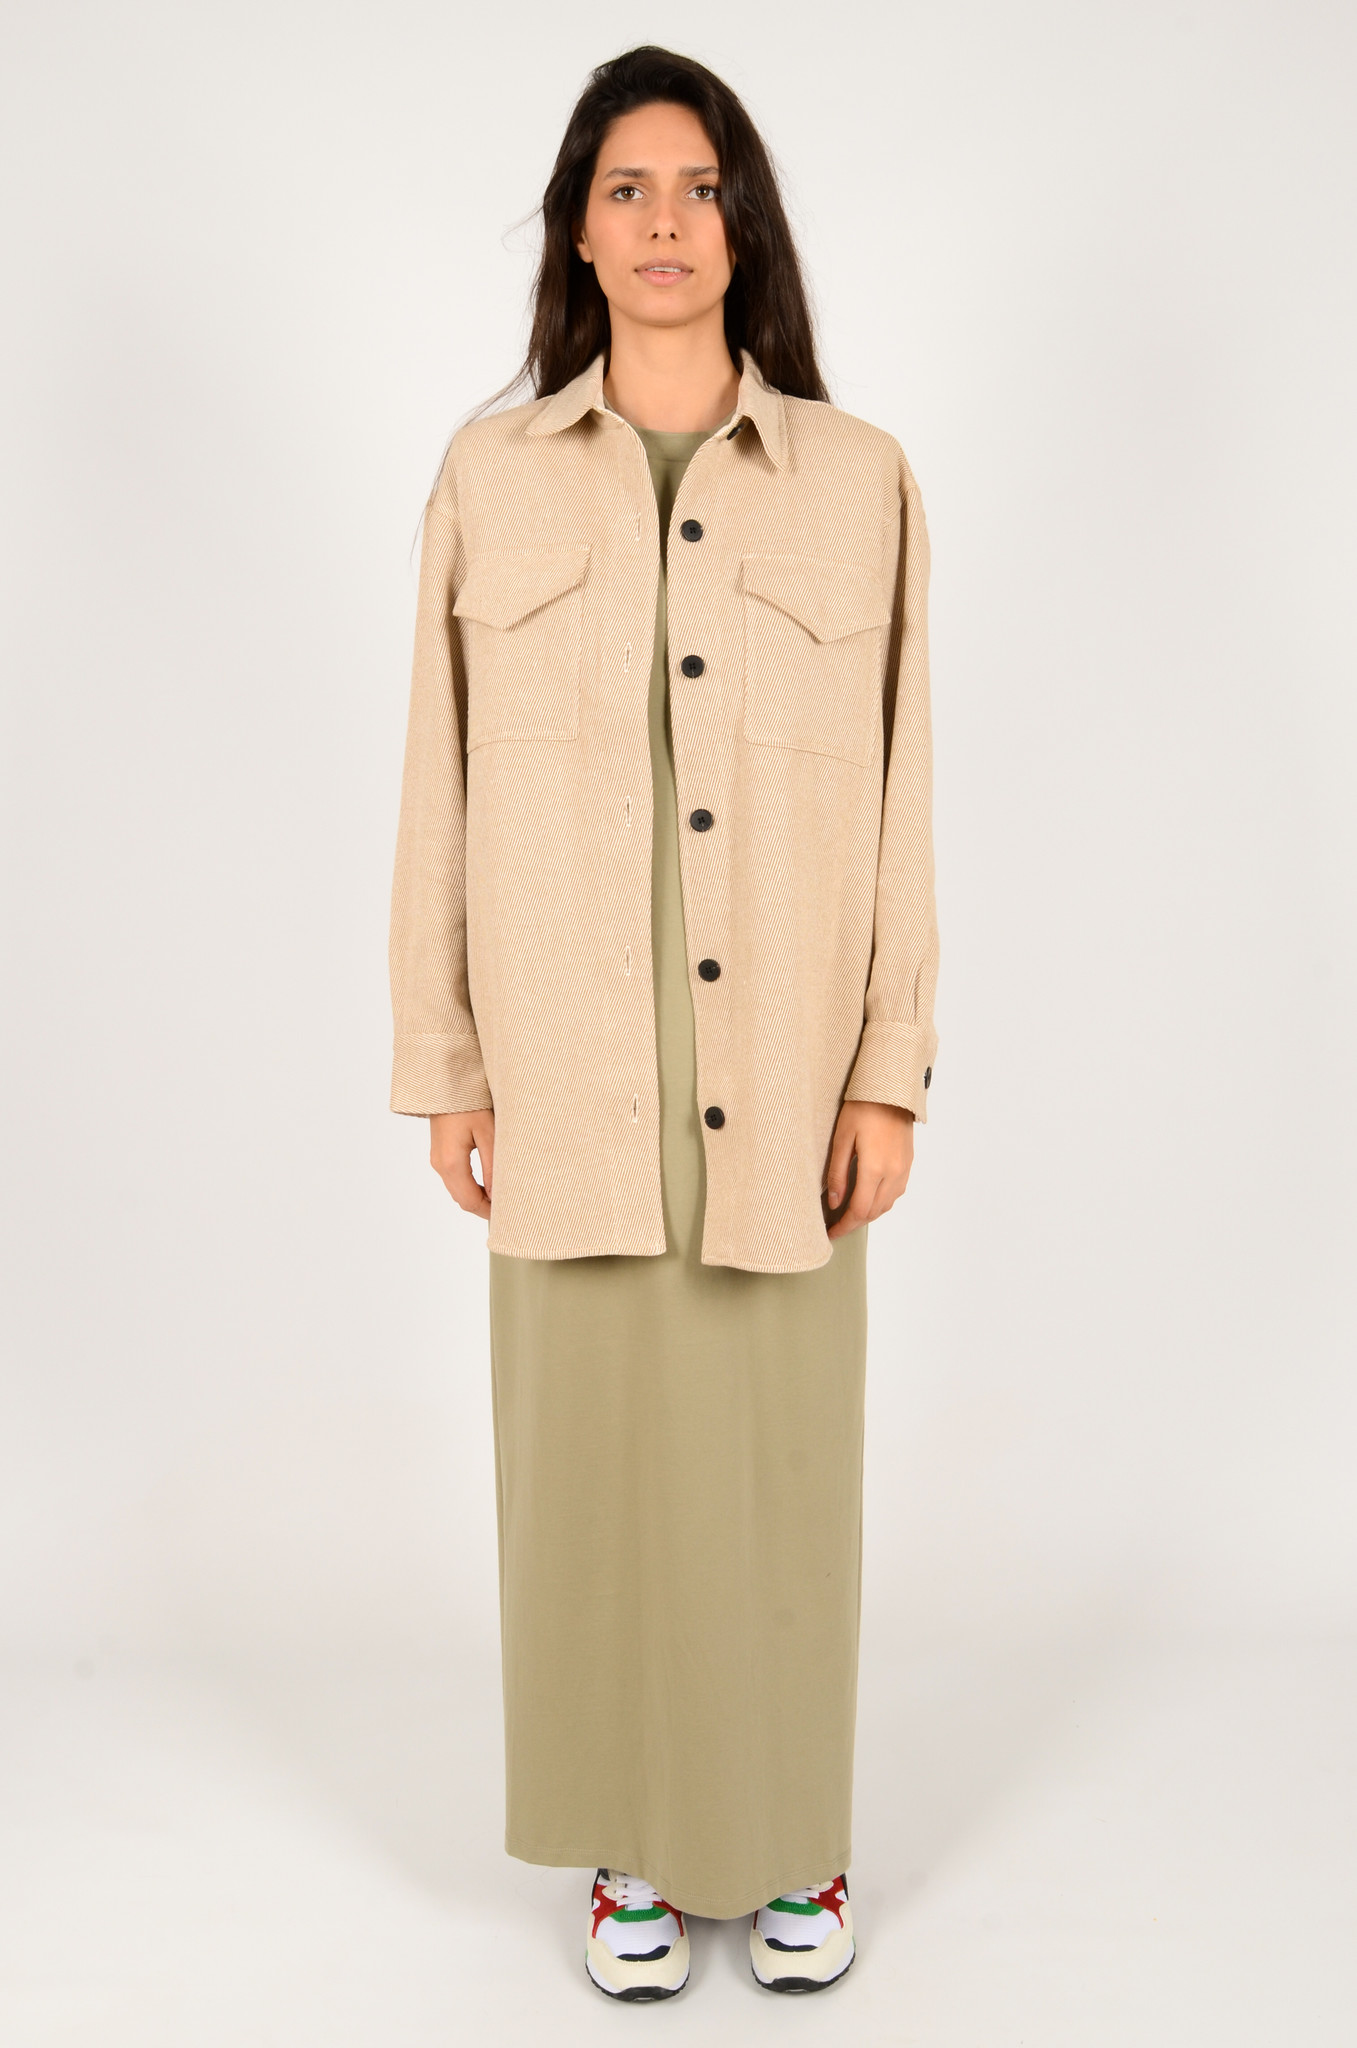 PALERMO SHIRT COAT IN CAMEL-6